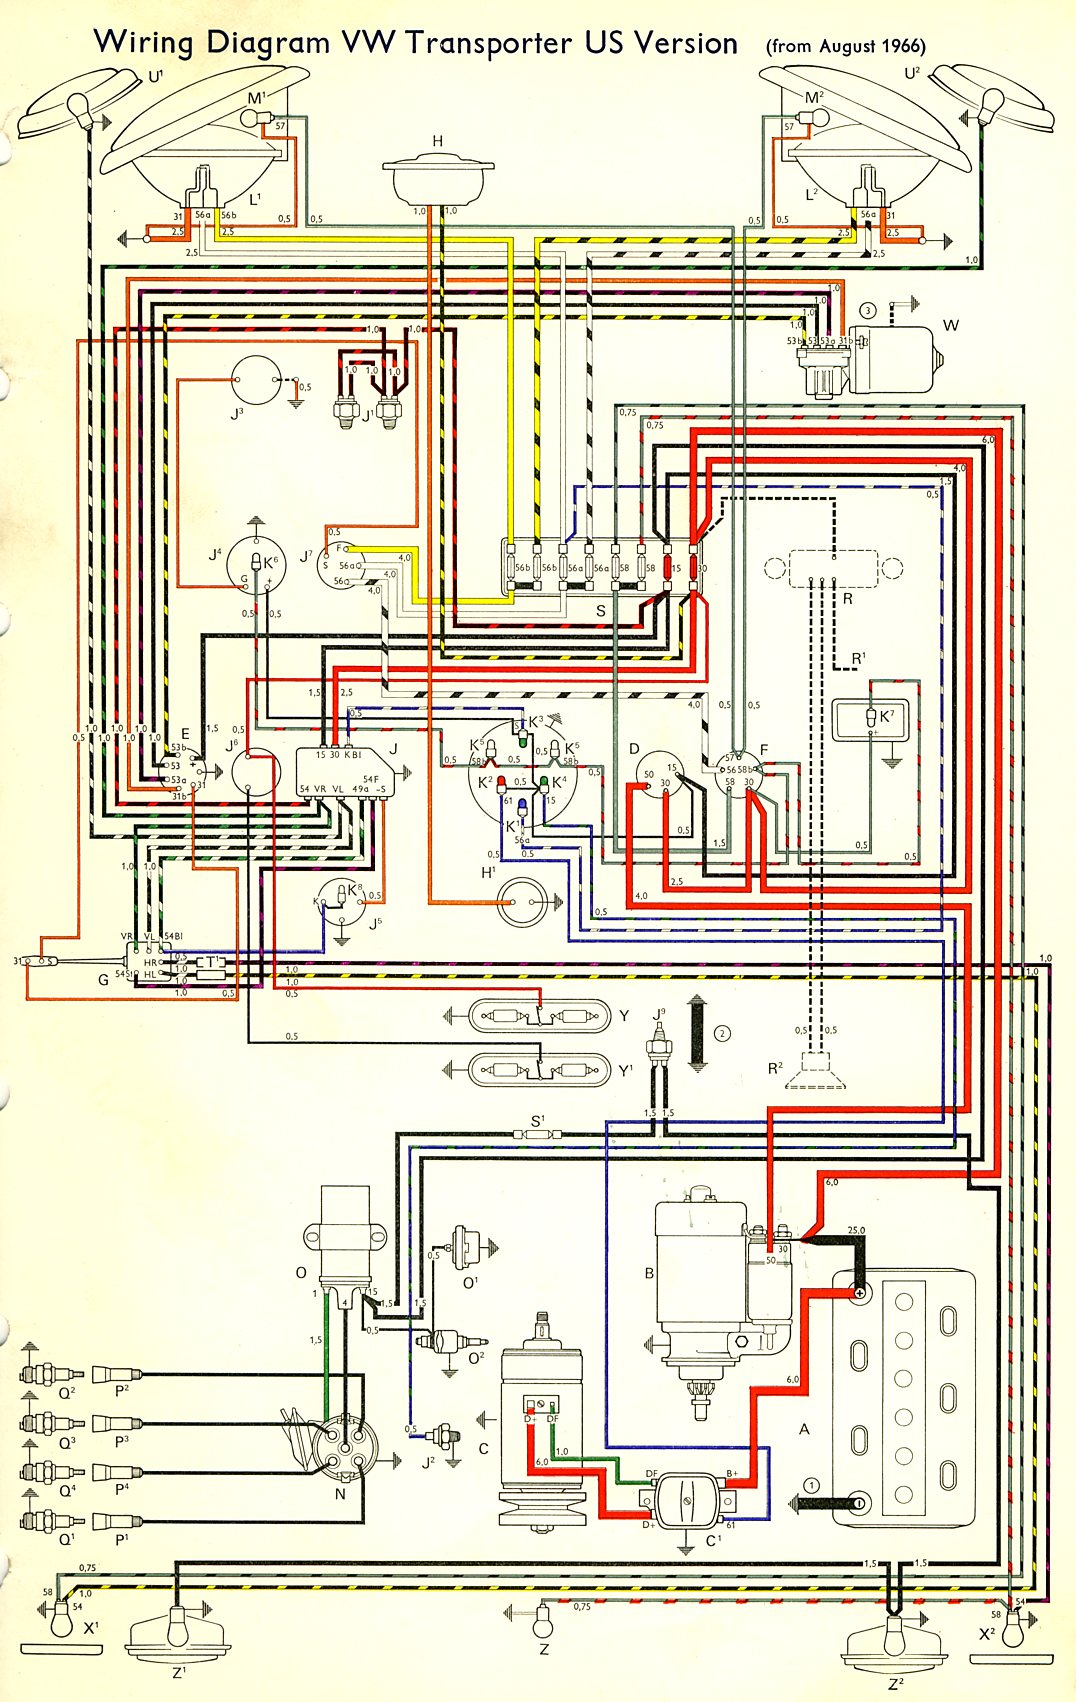 bus_67_USA 1967 bus wiring diagram (usa) thegoldenbug com 1971 vw bus wiring diagram at webbmarketing.co